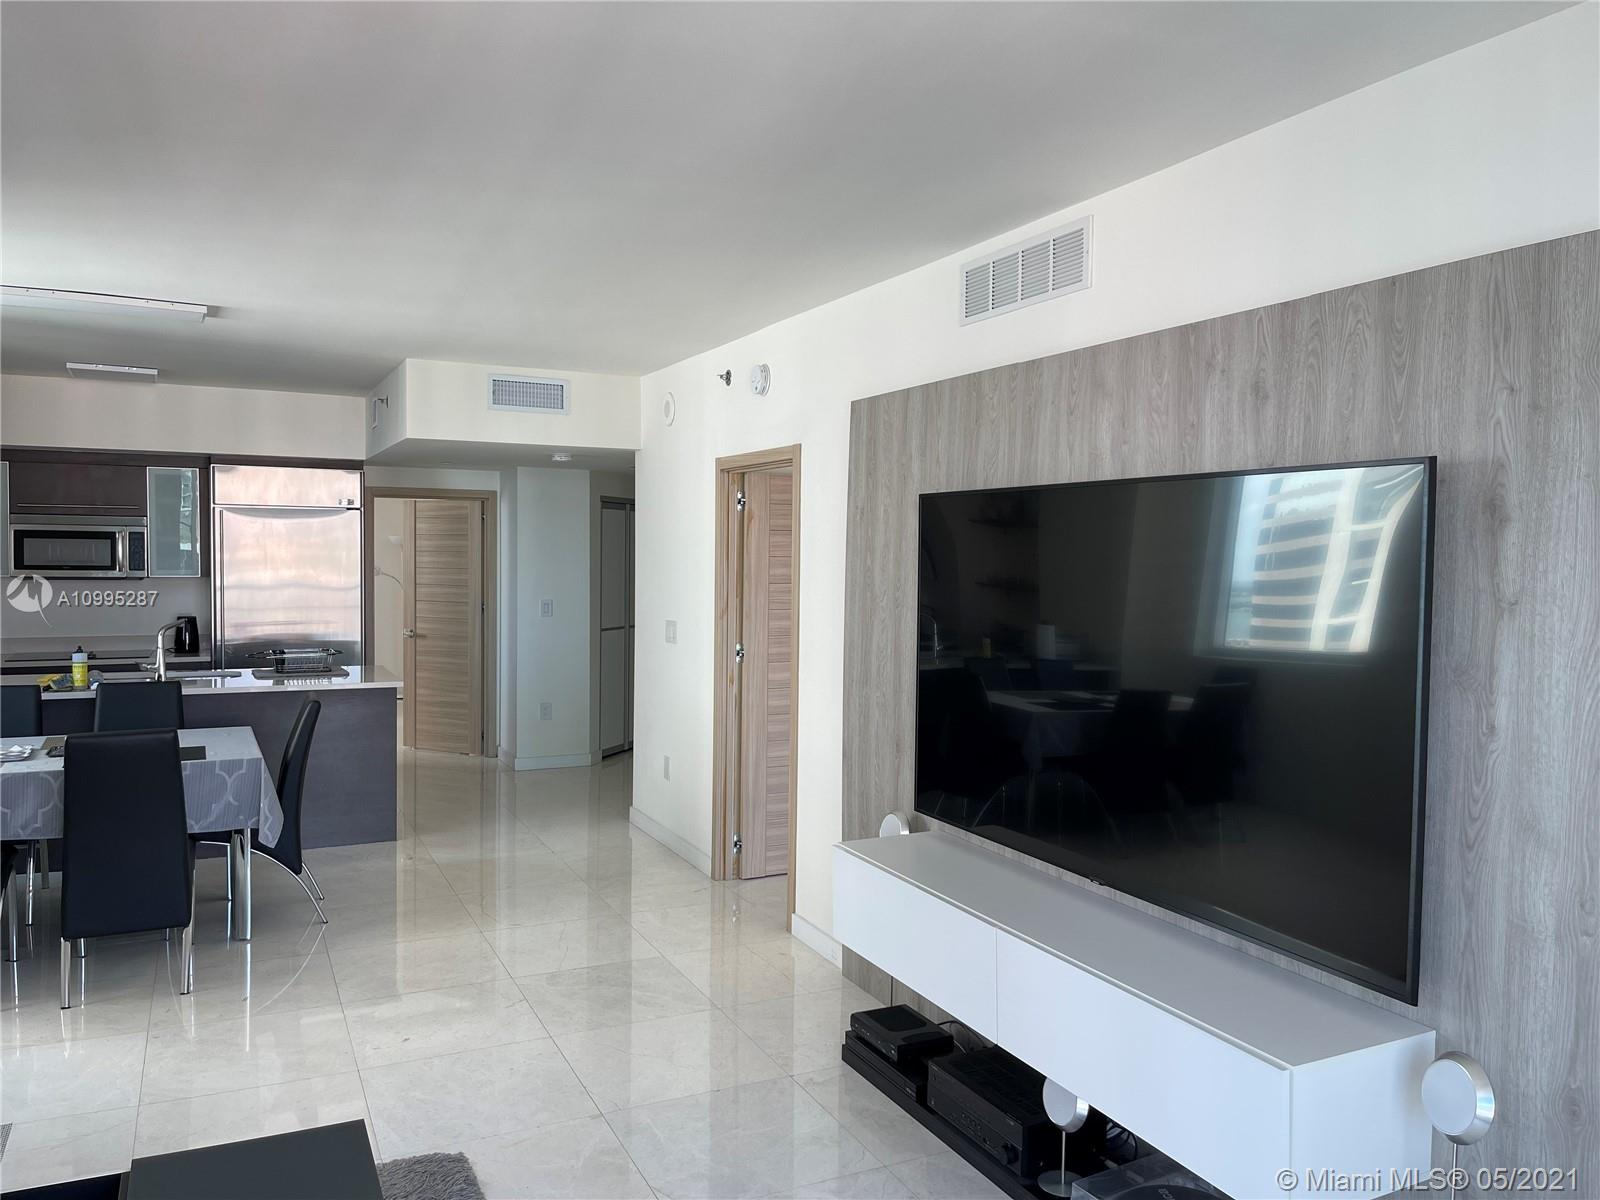 500 Brickell East Tower #2707 - 55 SE 6th St #2707, Miami, FL 33131